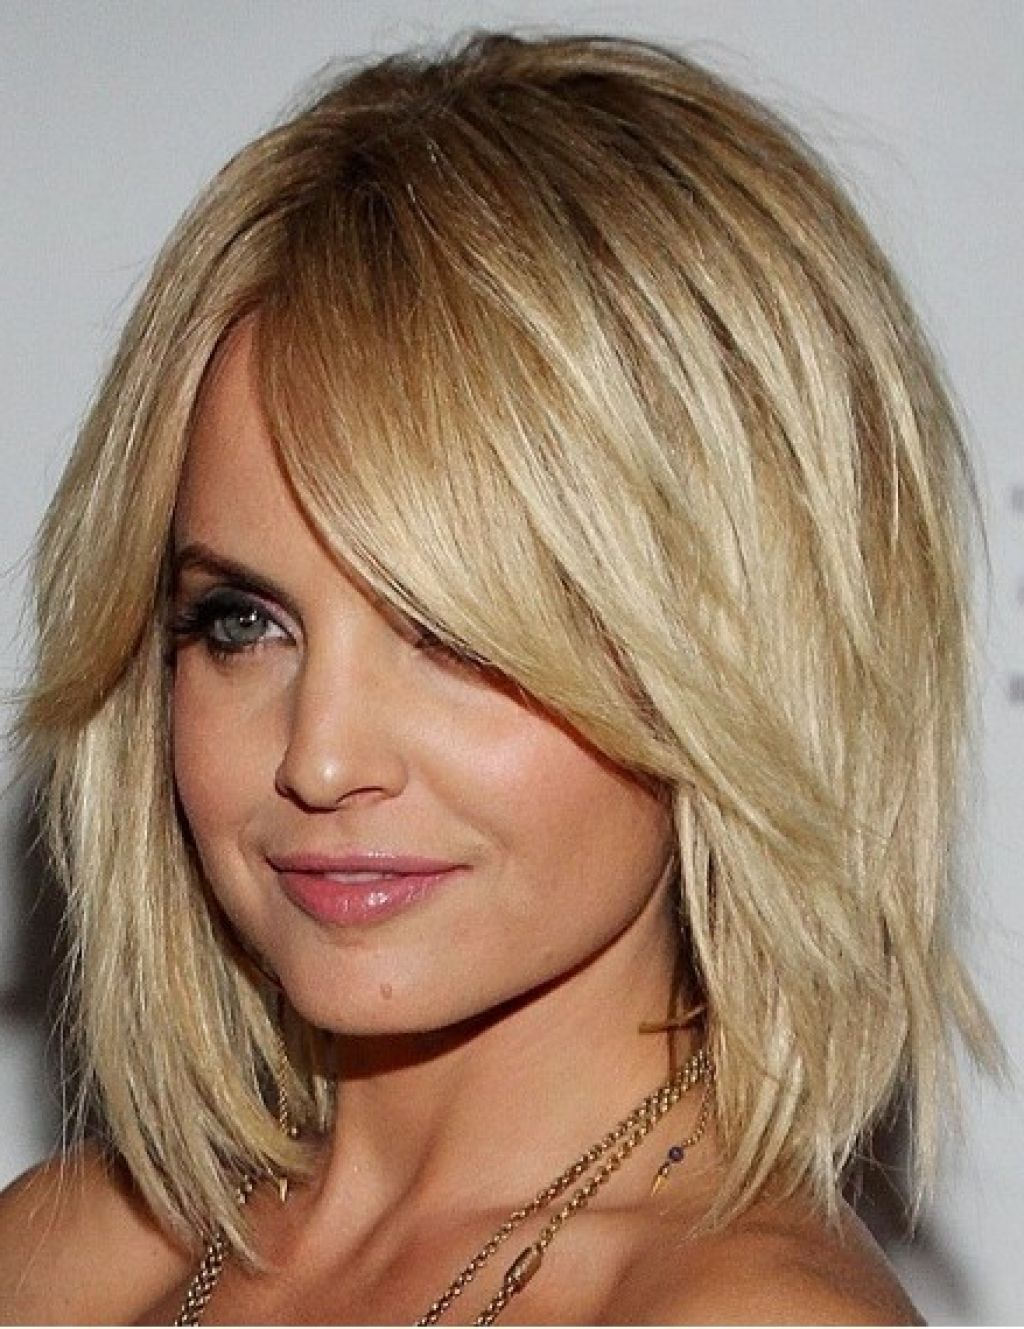 Bangs for wavy hair and oval face archives women medium haircut - Bangs Hairstyles Medium Long Hair For 2016